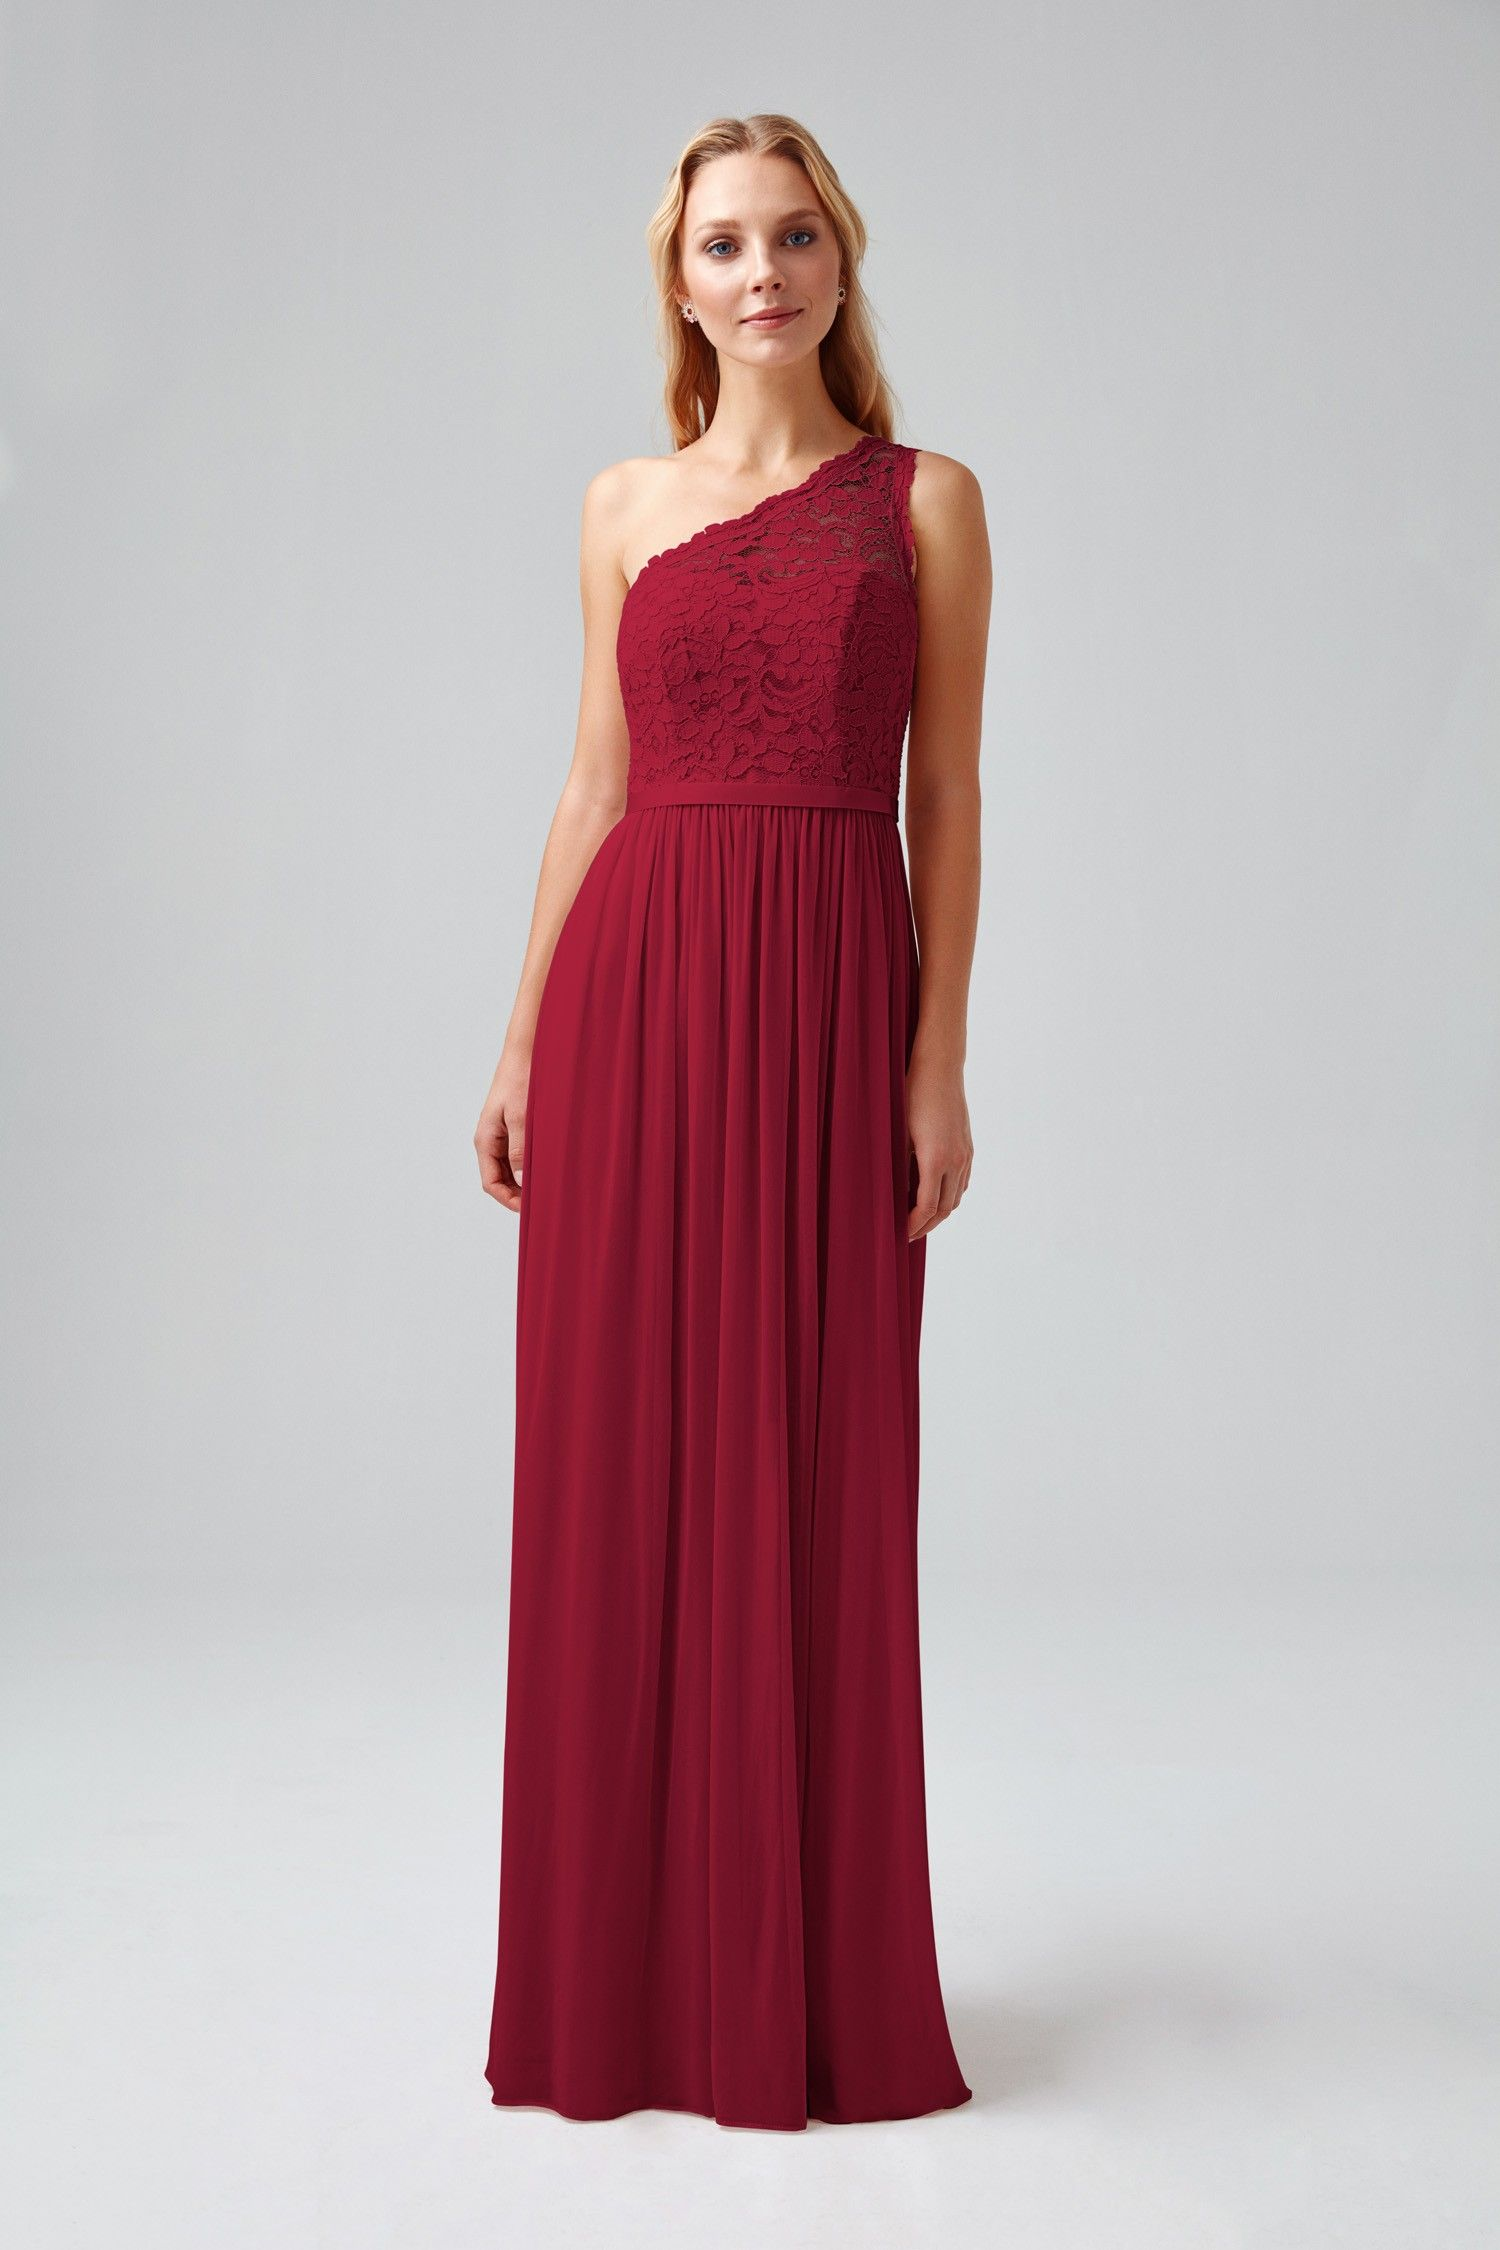 Long One Shoulder Lace Bridesmaid Dress Style No F17063